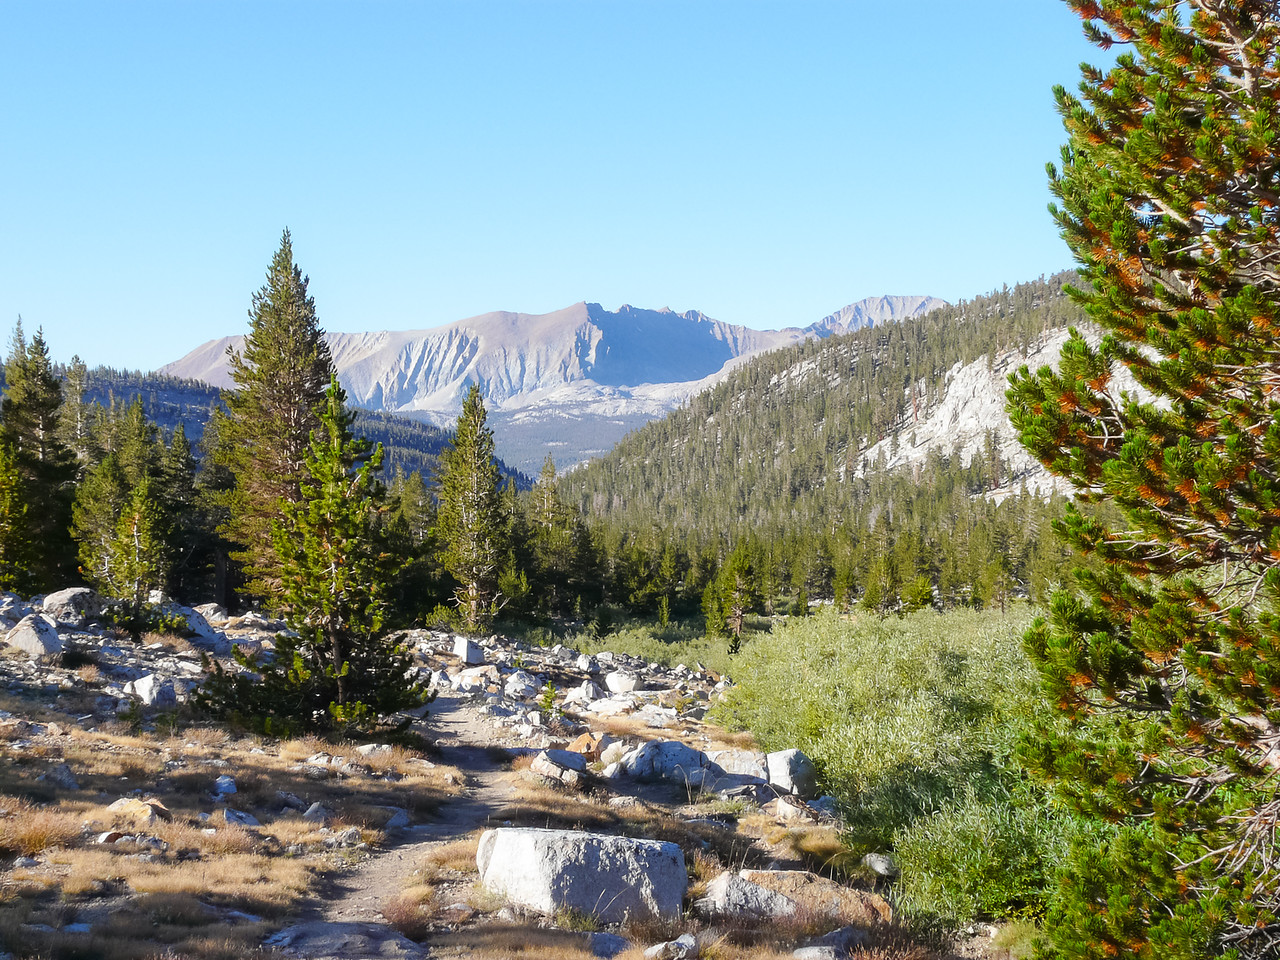 Day 6 - Wednesday, September 9.   On the JMT just past the Tyndall Creek camp.  Tyndall Creek itself is at the right.